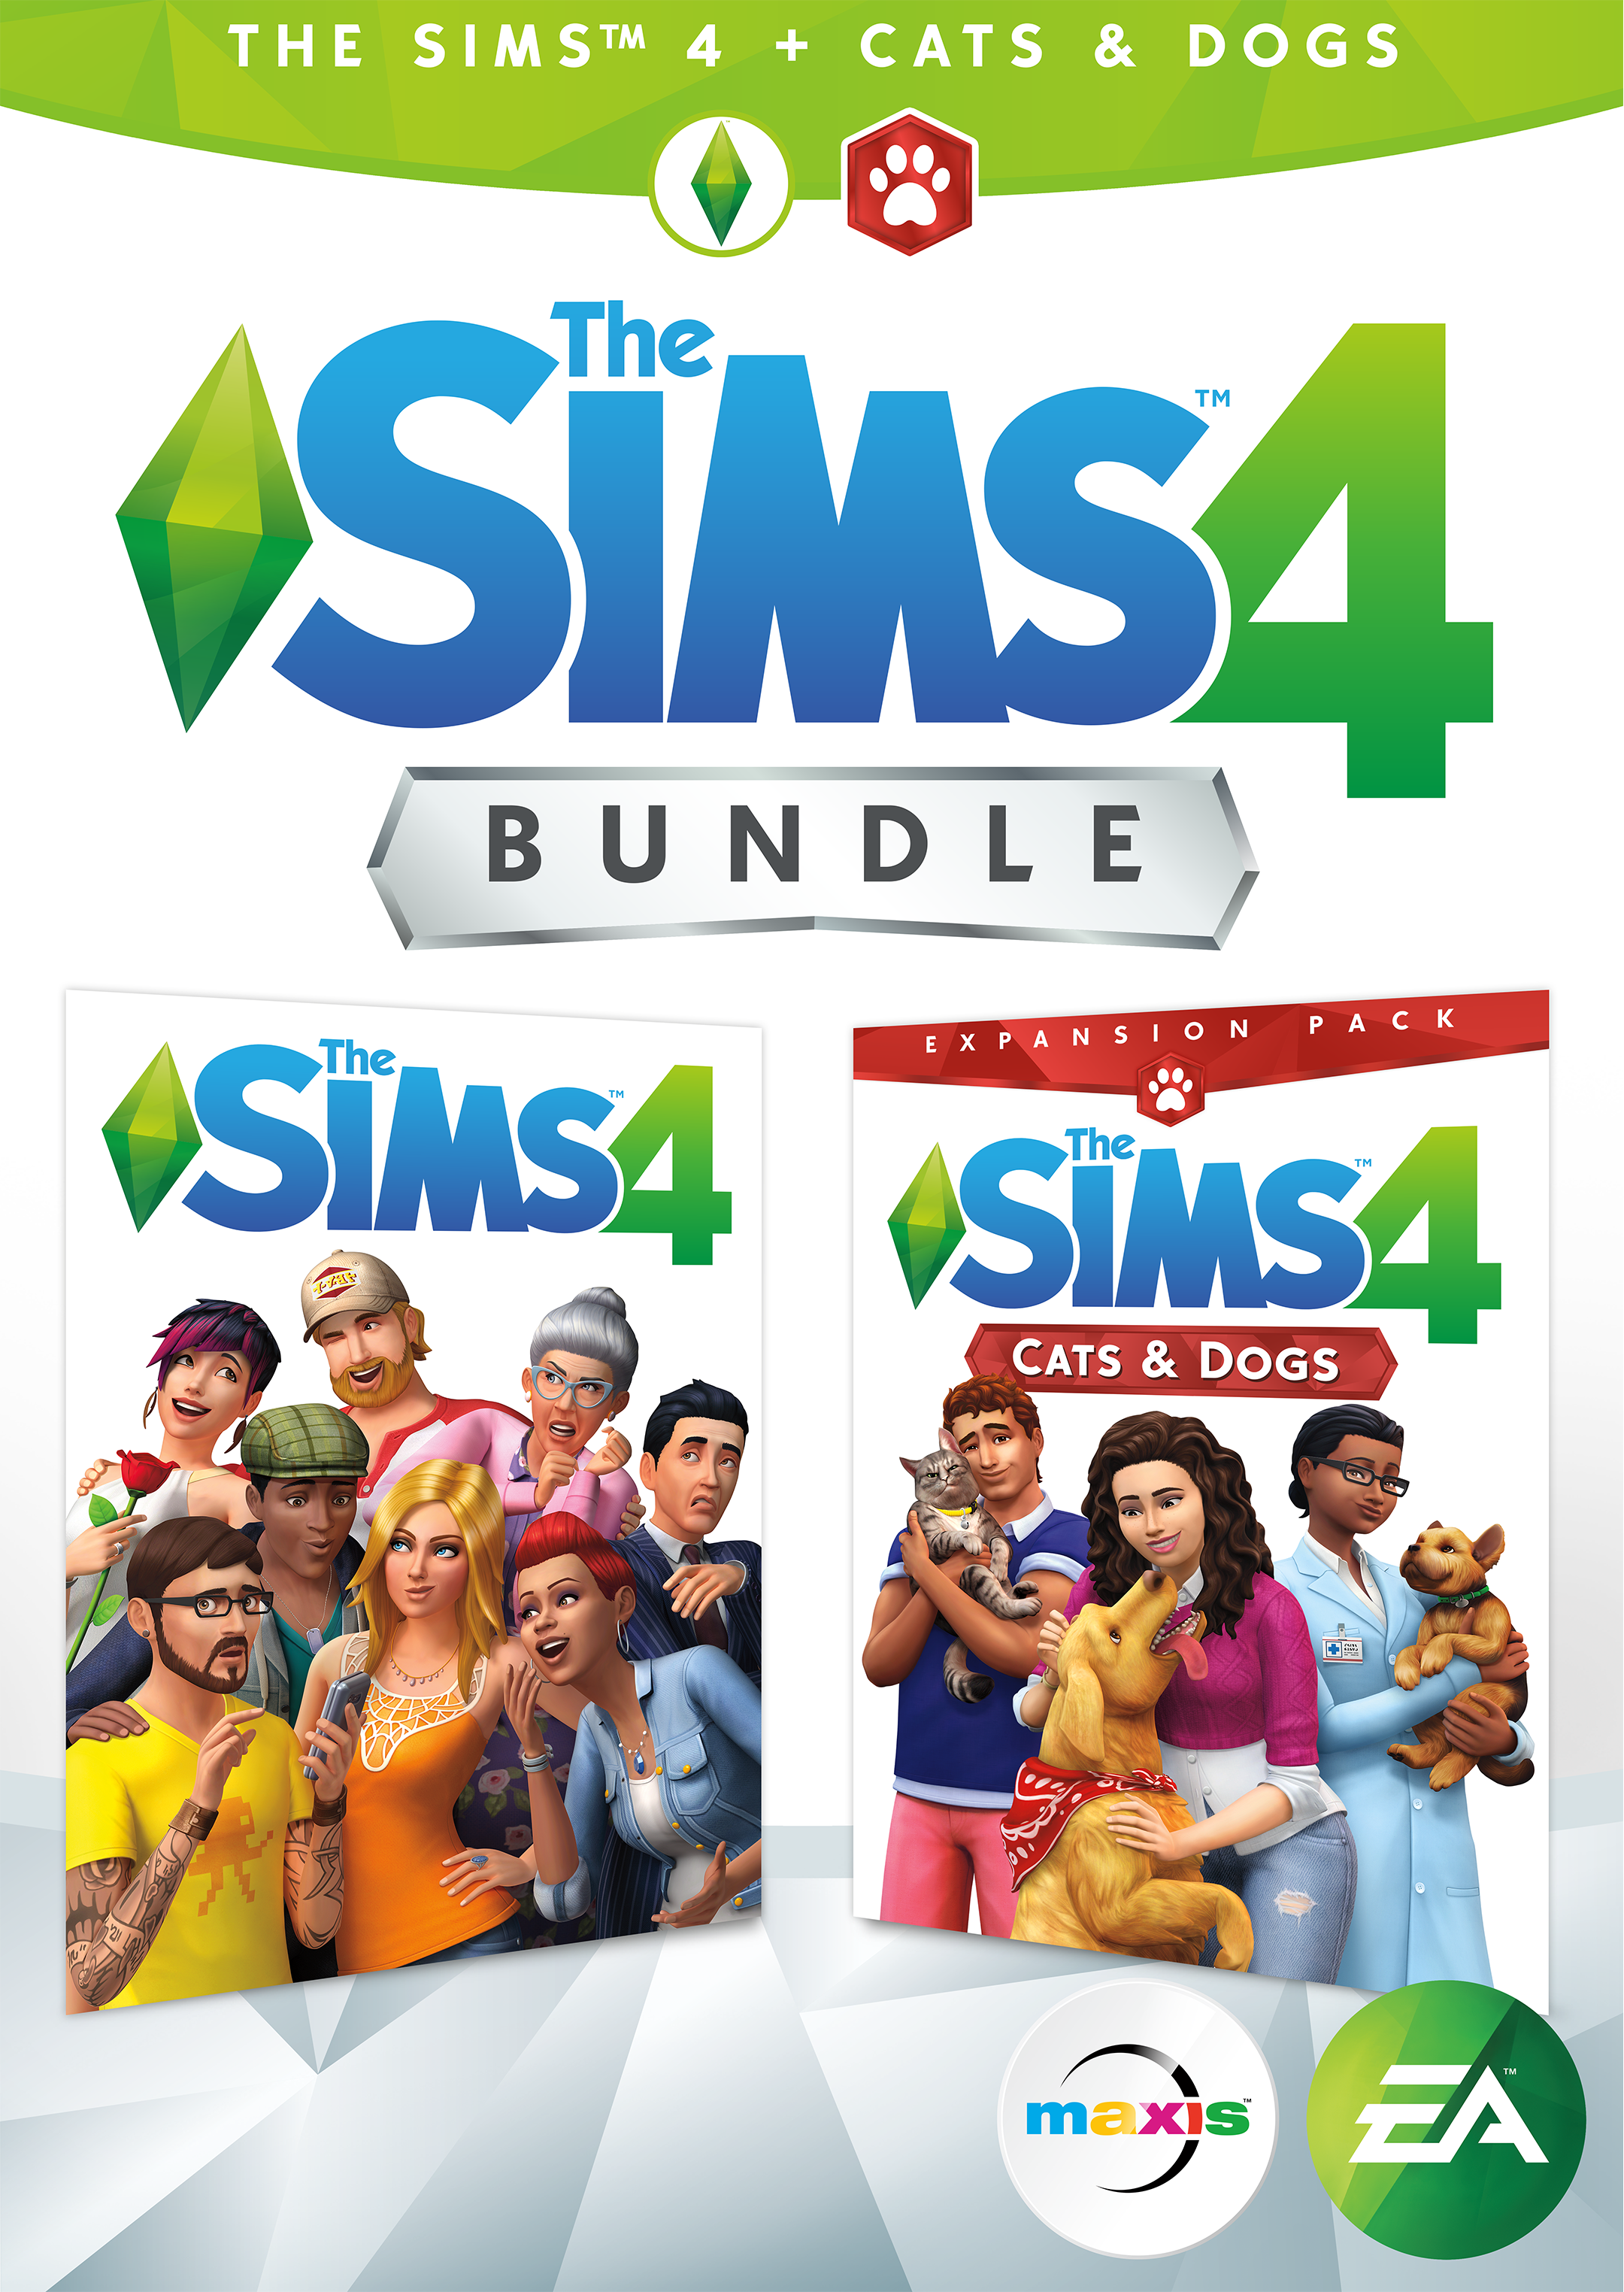 The Sims 4 Plus Cats & Dogs Bundle [Online Game Code] (Sims 4 Cats And Dogs Expansion Pack)